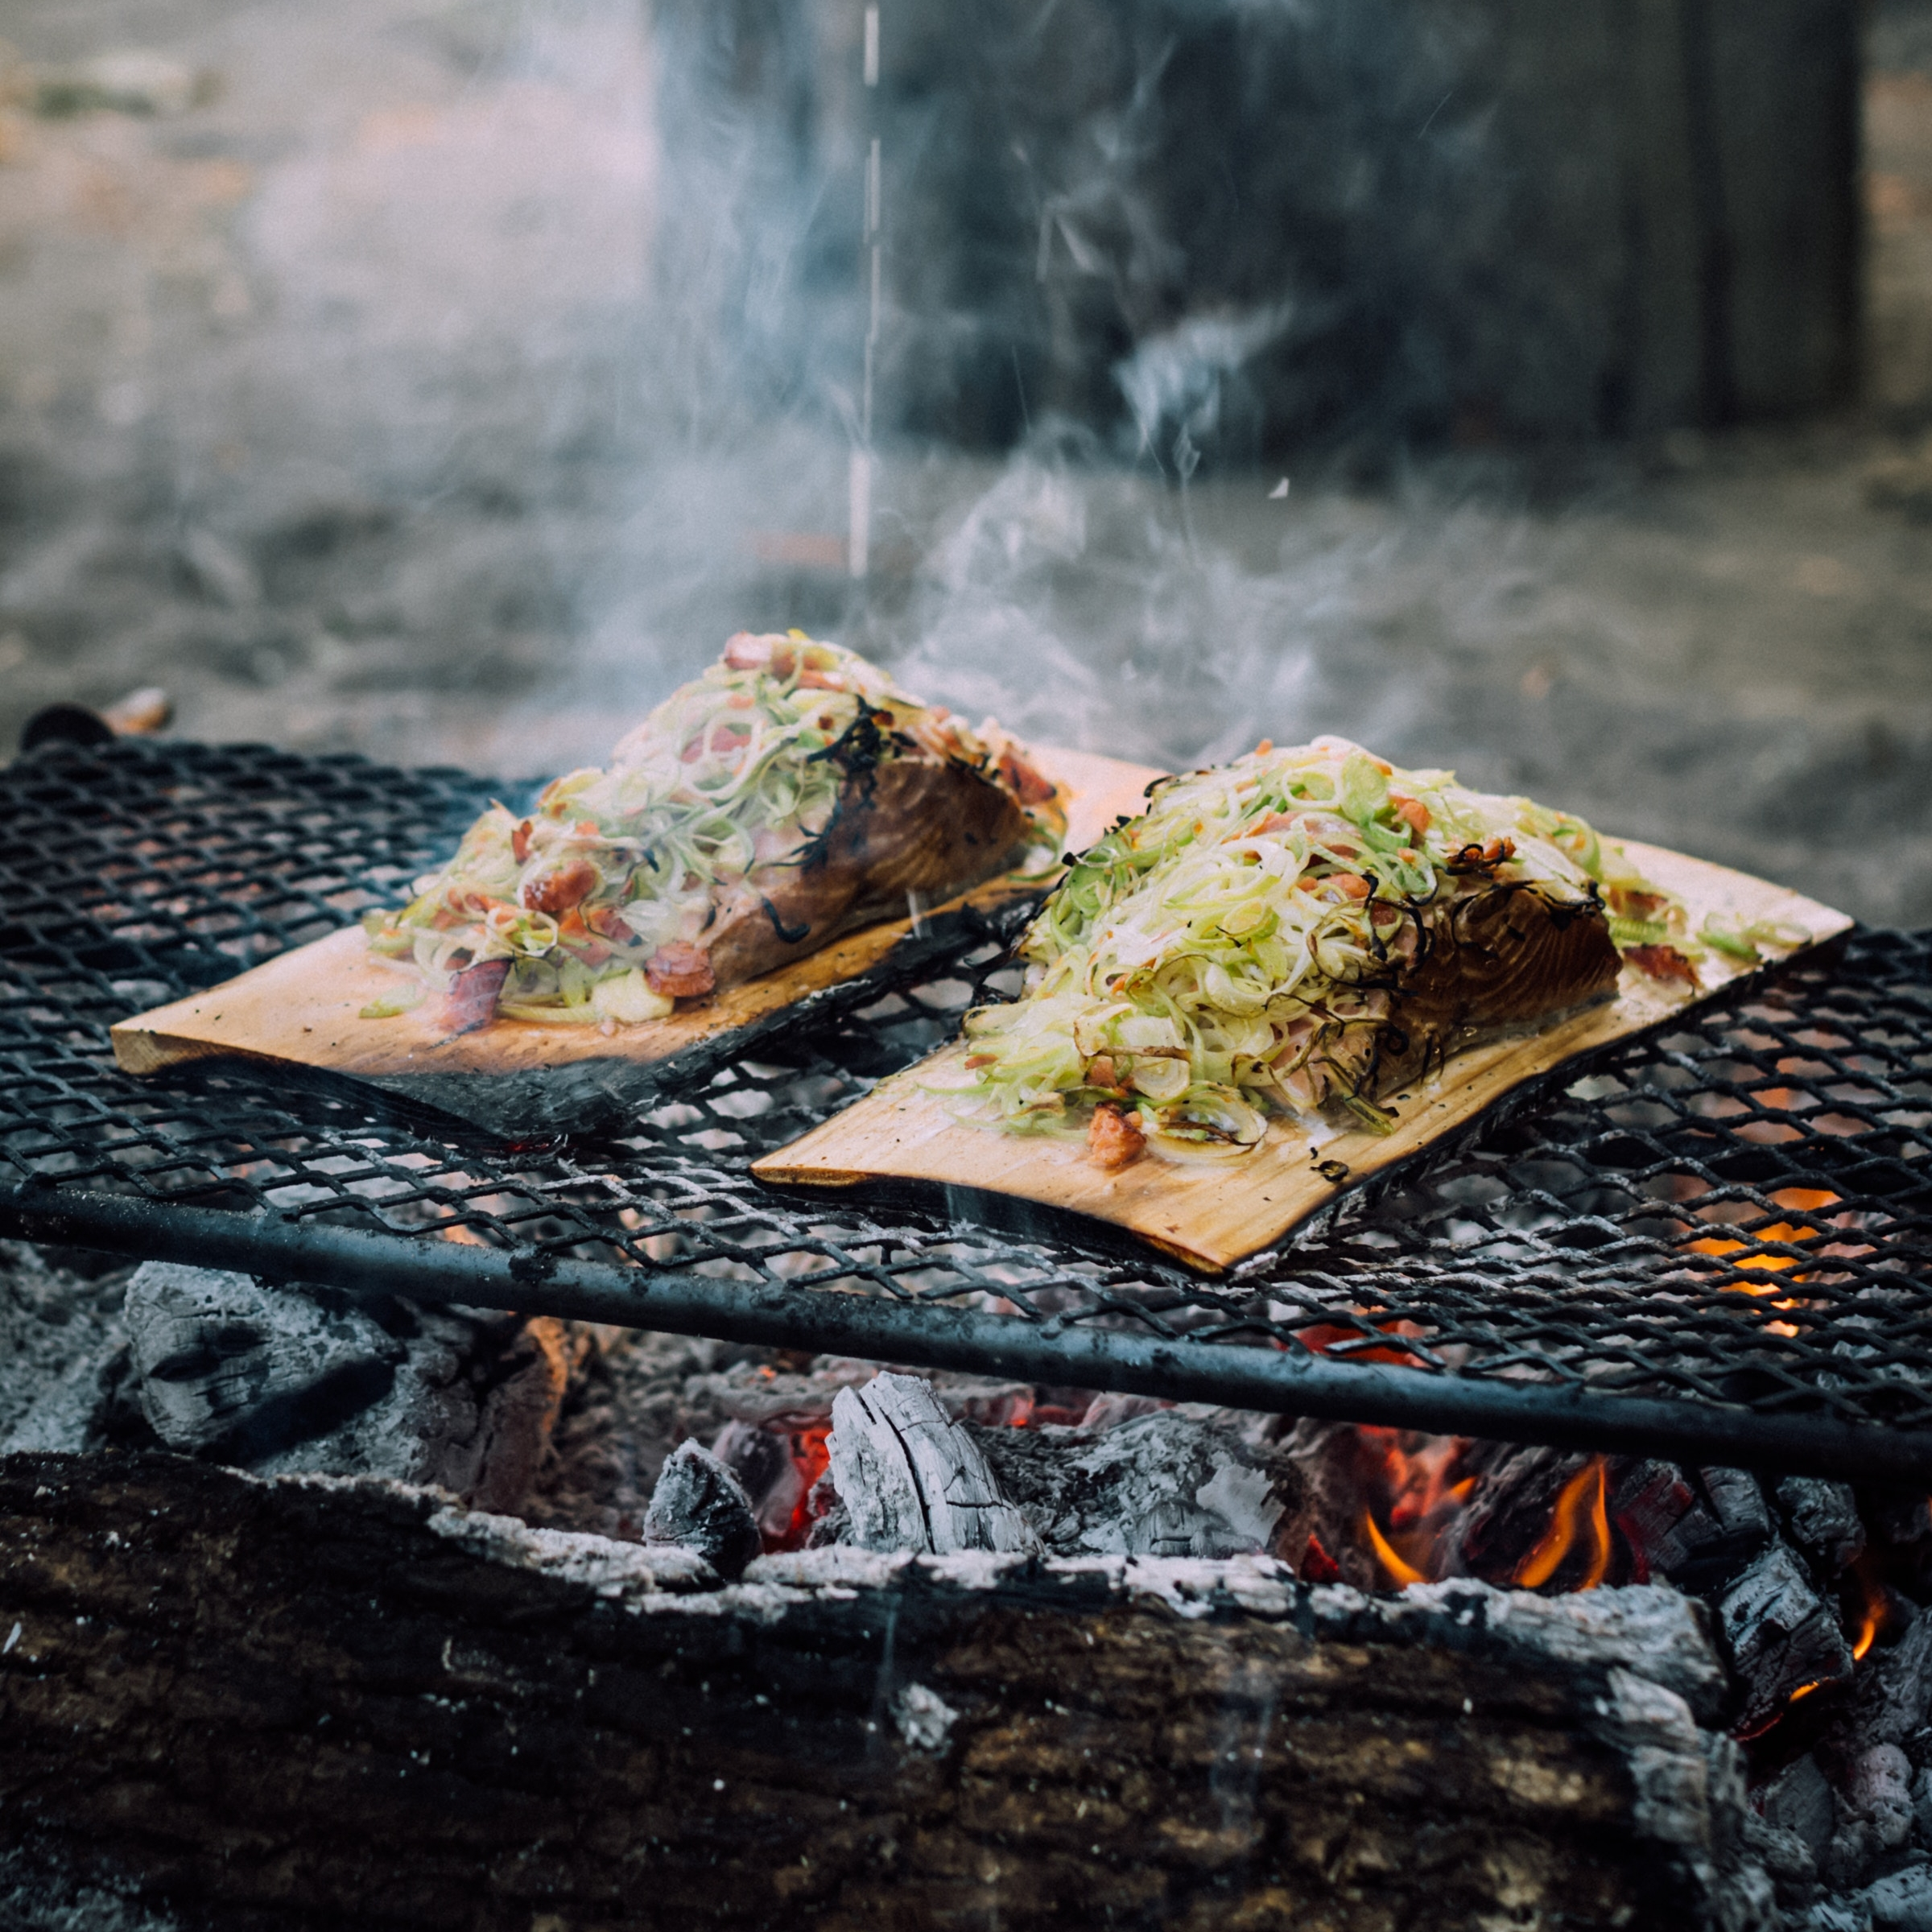 BBQ's - Normally a season choice, but never the less, we offer bespoke menus and fire pit and BBQ hire if required.